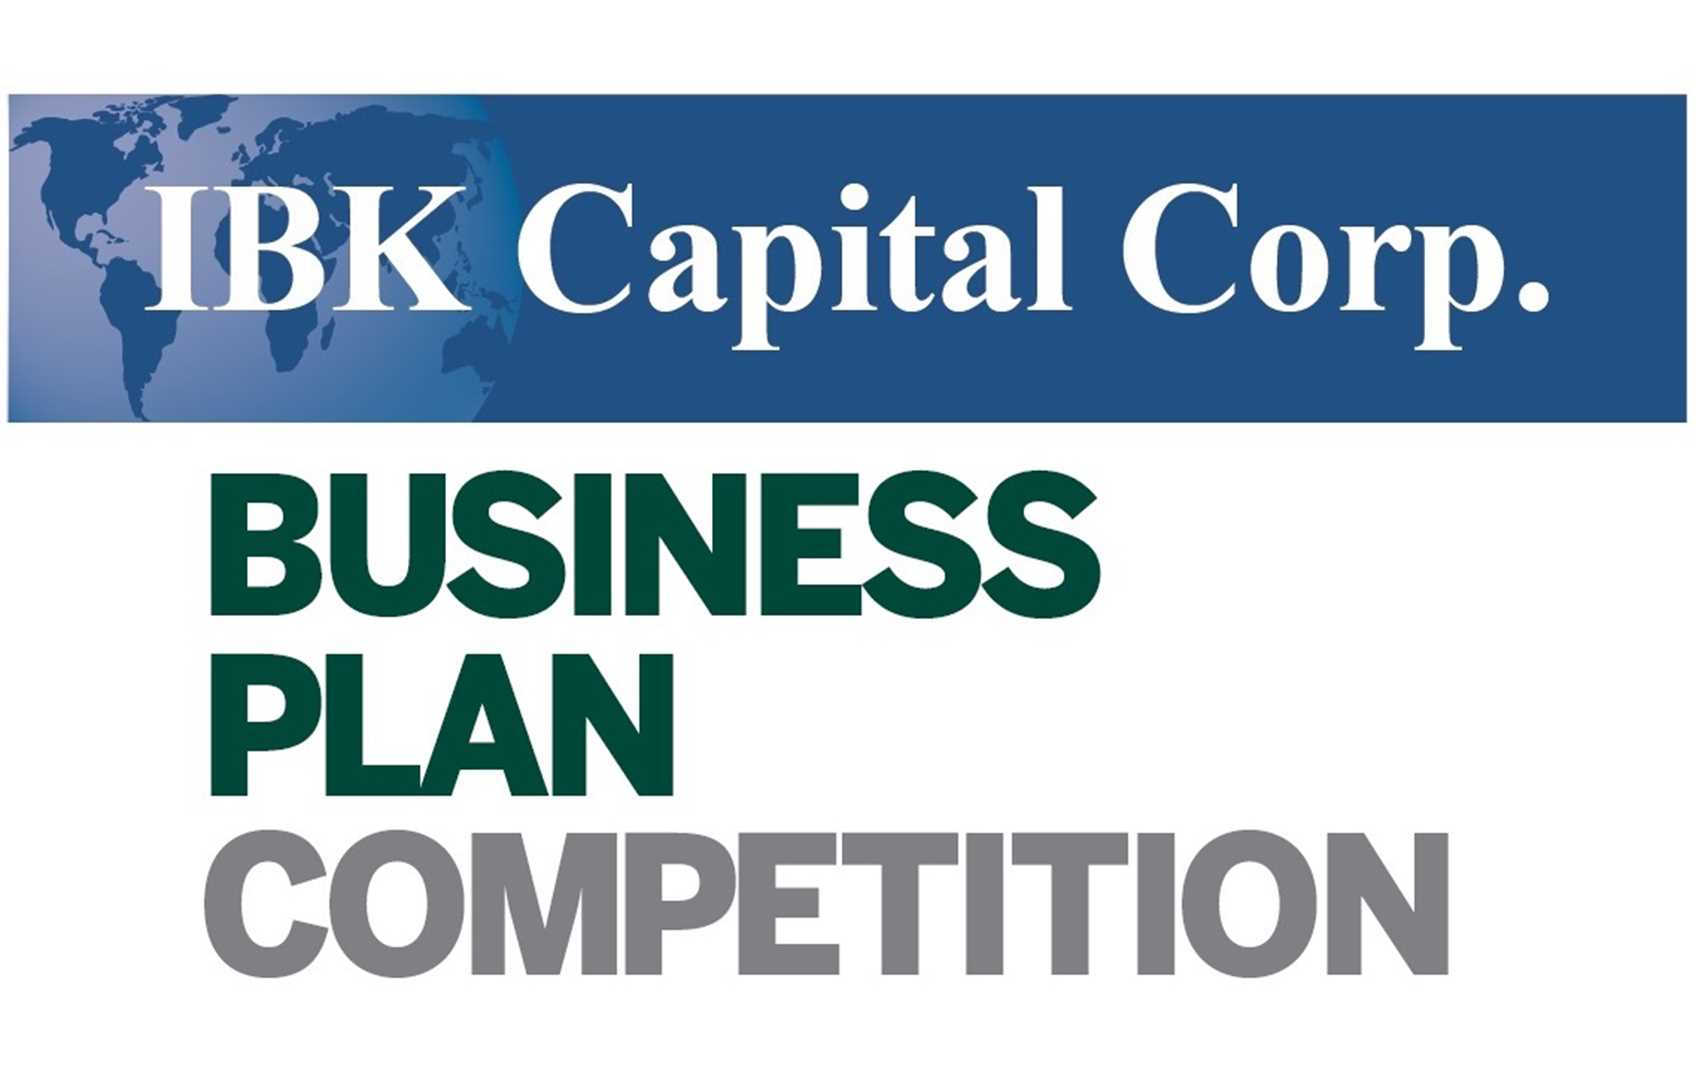 2017 IBK Capital - Ivey Business Plan Competition